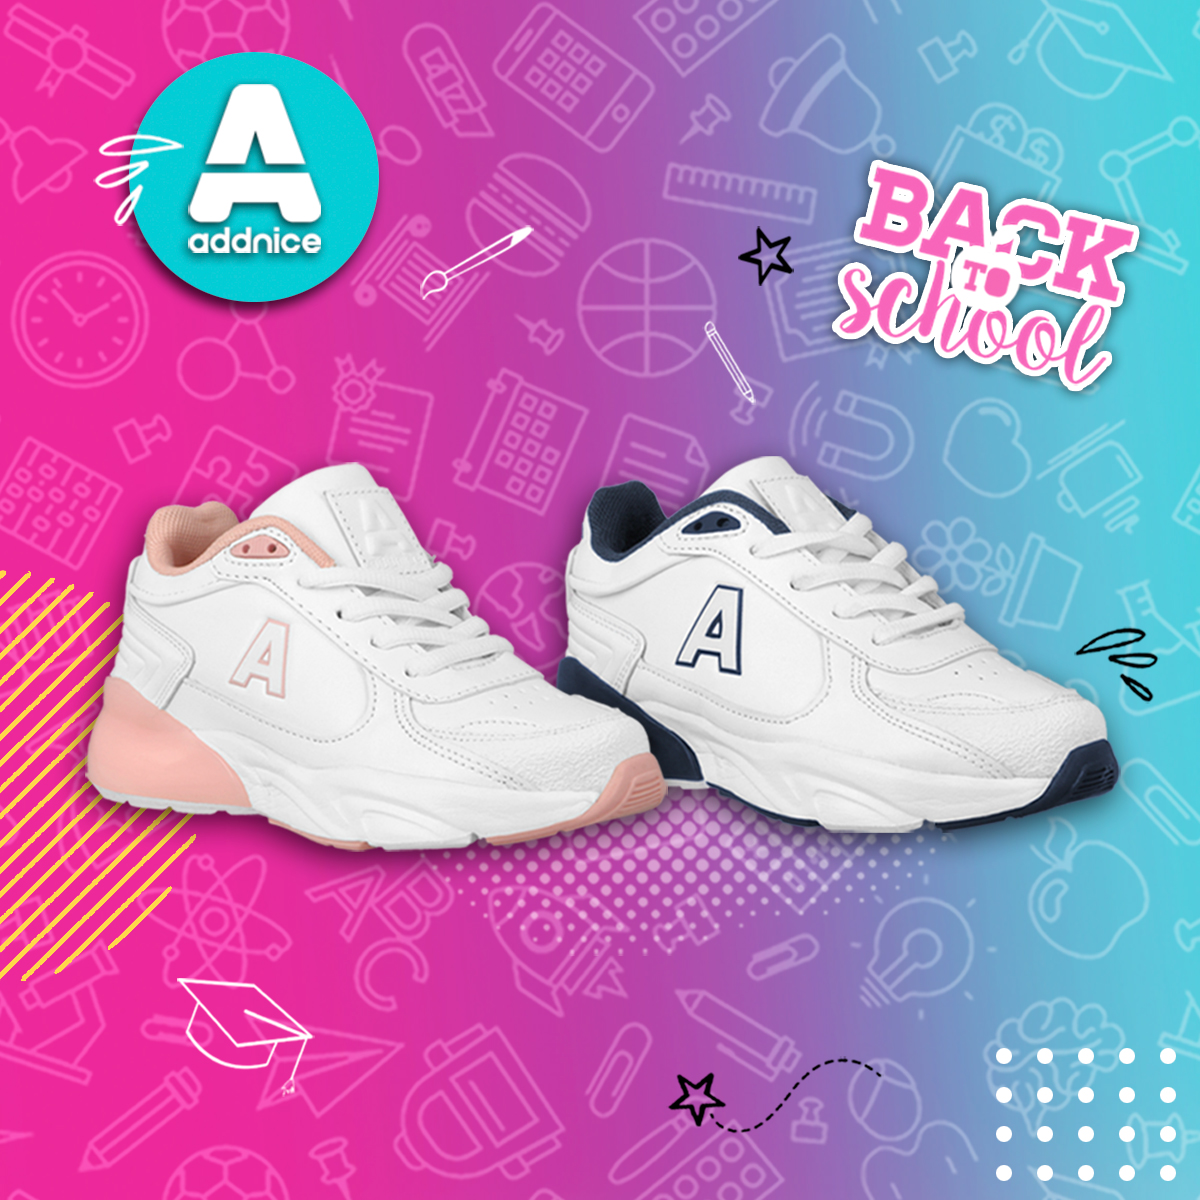 Addnice-Back to School